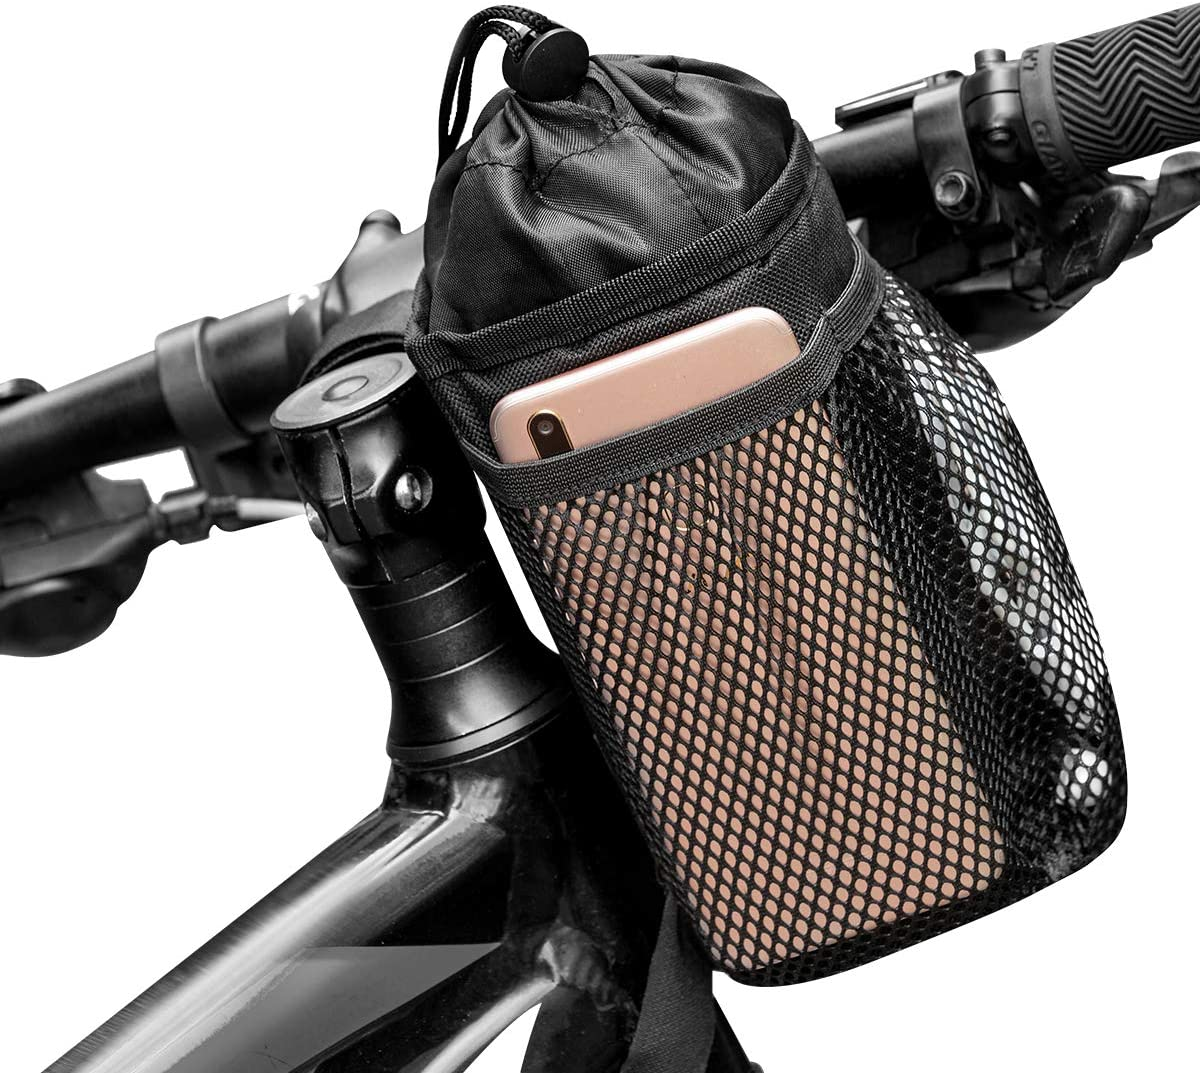 Caudblor Bike Water Bottle Holder Bag for Kid Adult, Insulated Bicycle Coffee Cup Holders with Phone Storage, Black Handlebar Drink/Beverage Container for Walker/Cruiser/Exercise/Mountain Bike